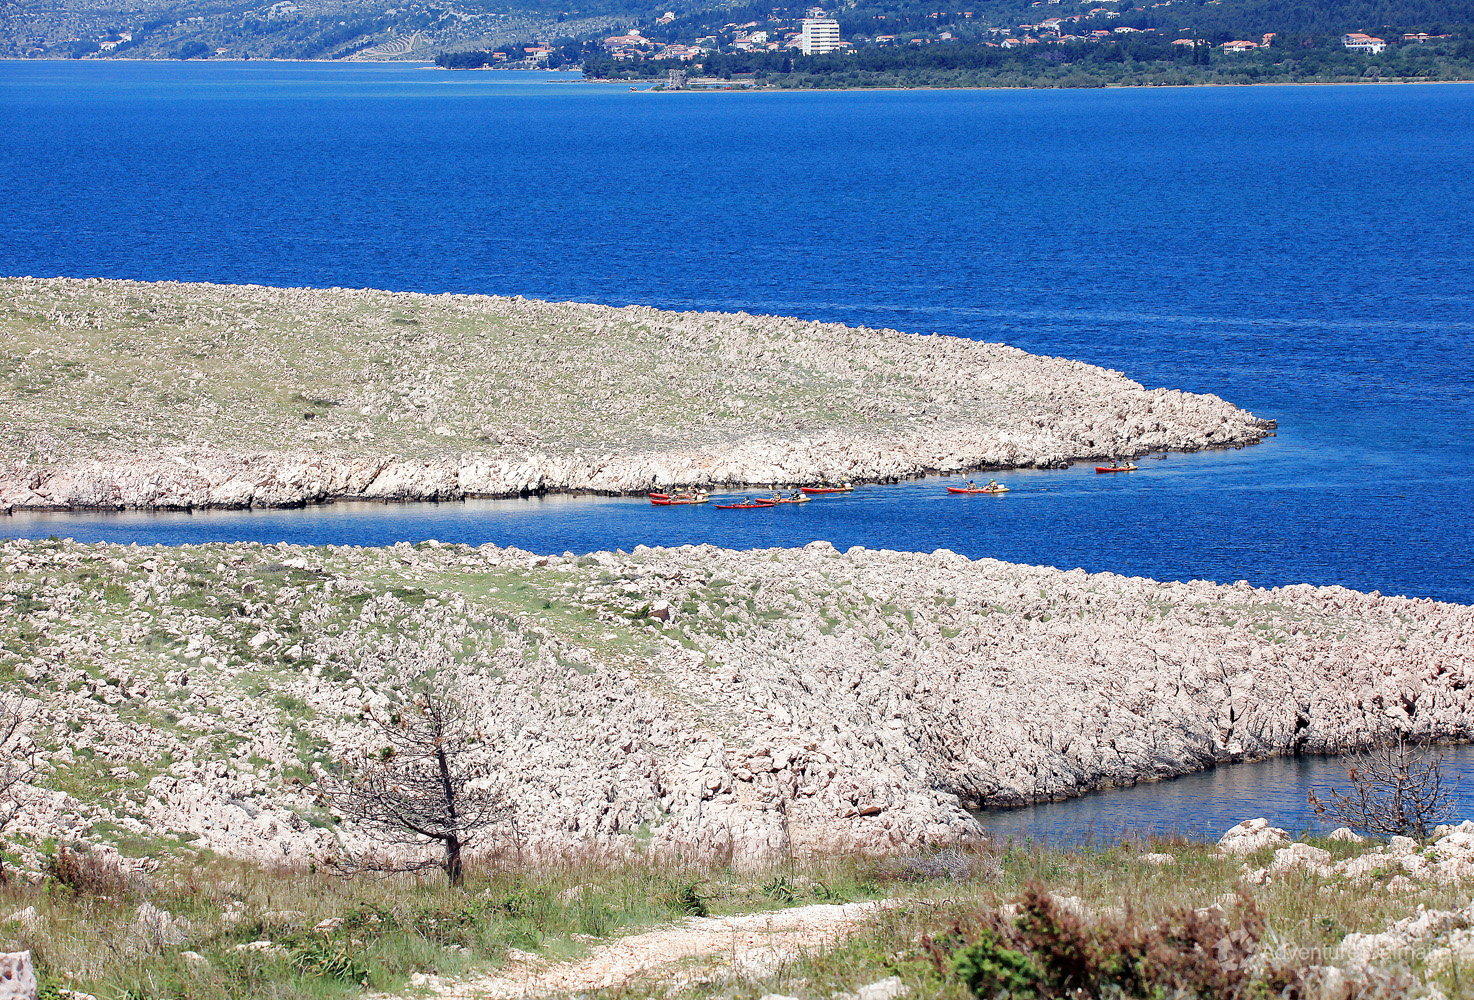 Velebit channel